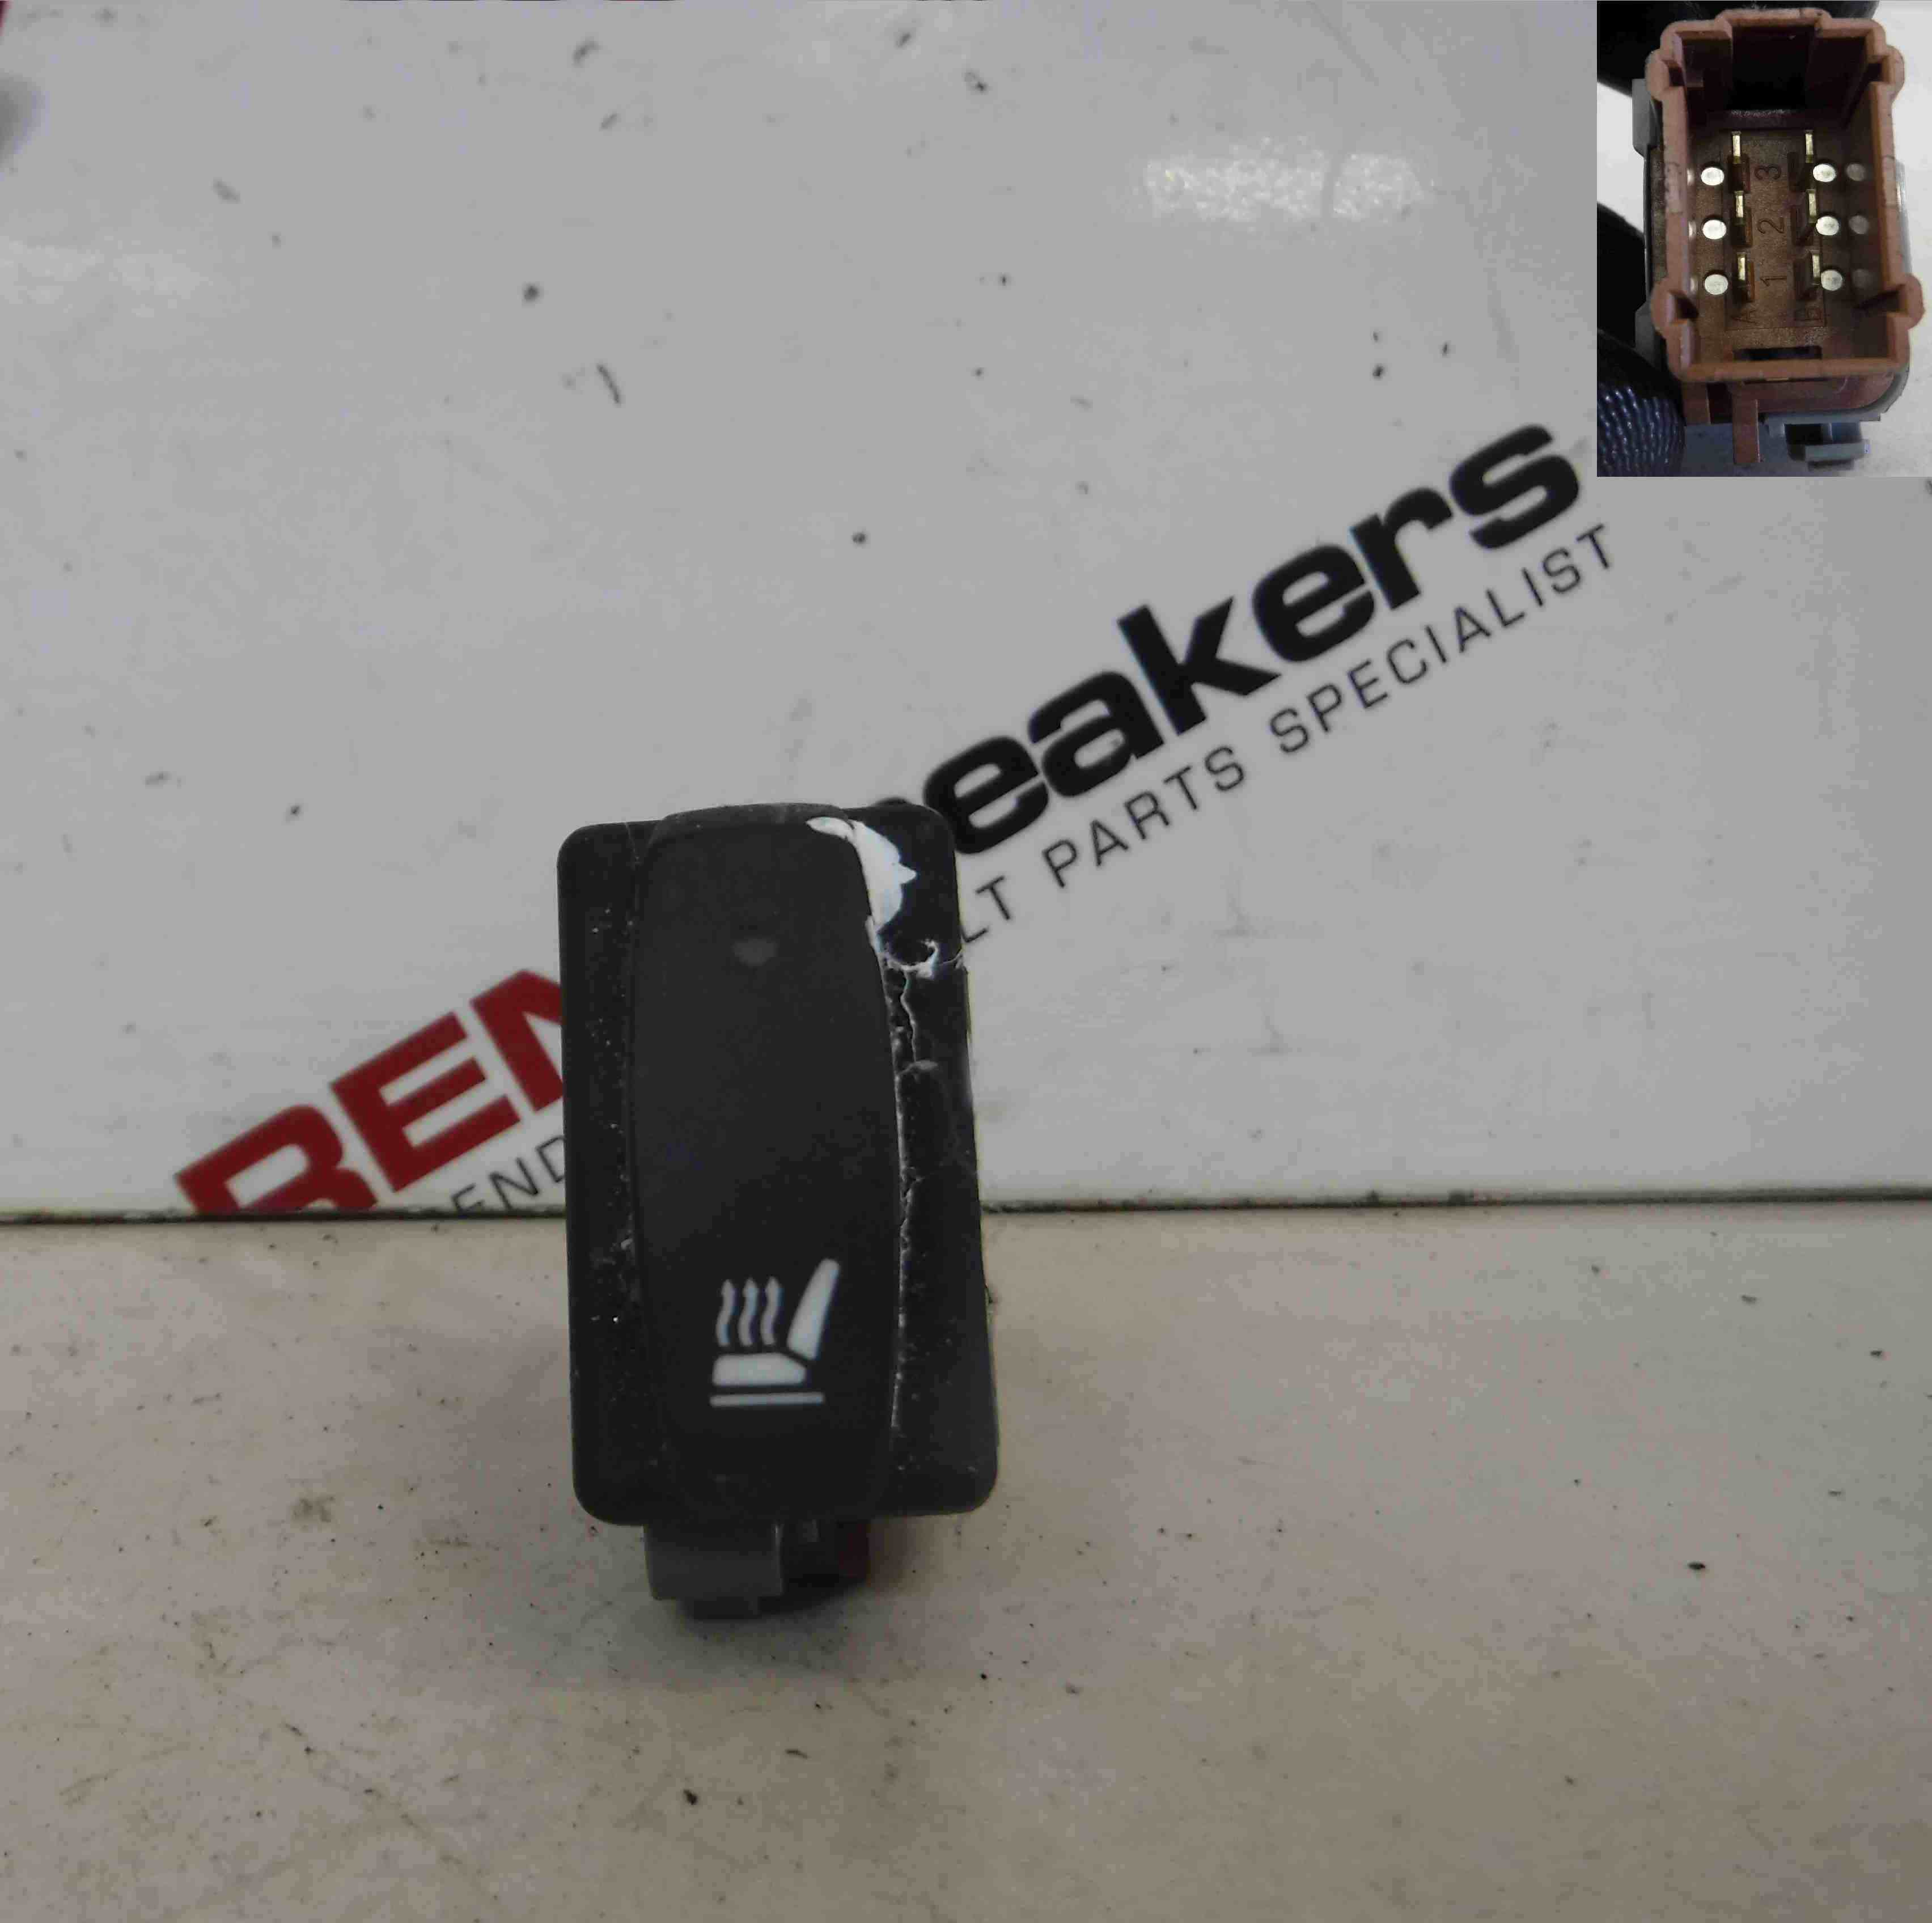 2010 Nissan Sentra Electrical Sentra Taillamp Part 16651118r Used